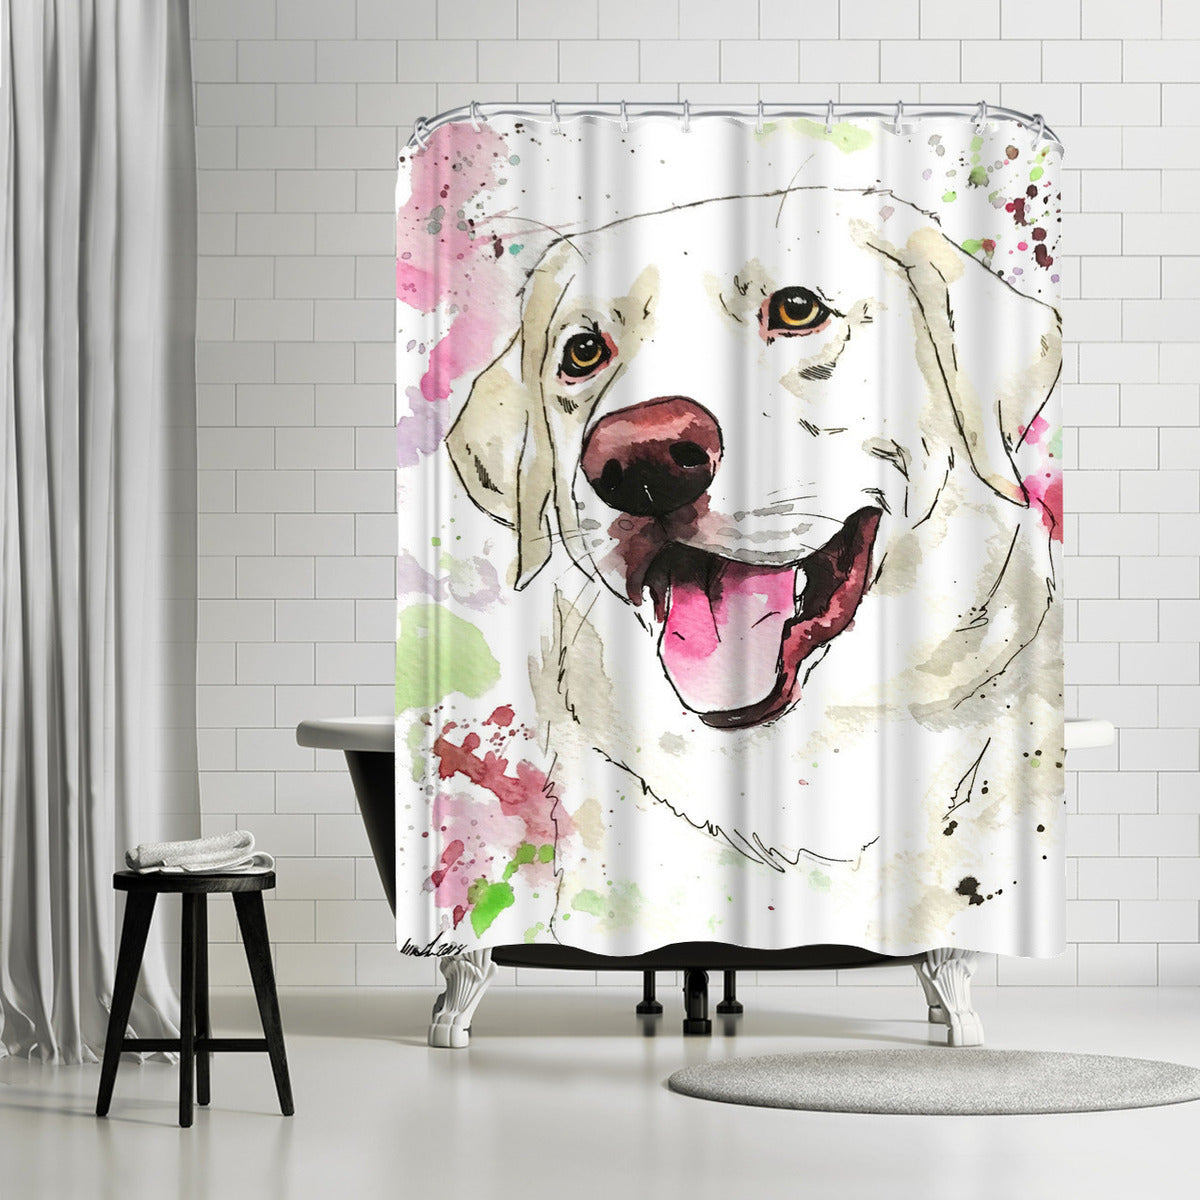 Dixie by Allison Gray Shower Curtain - Shower Curtain - Americanflat